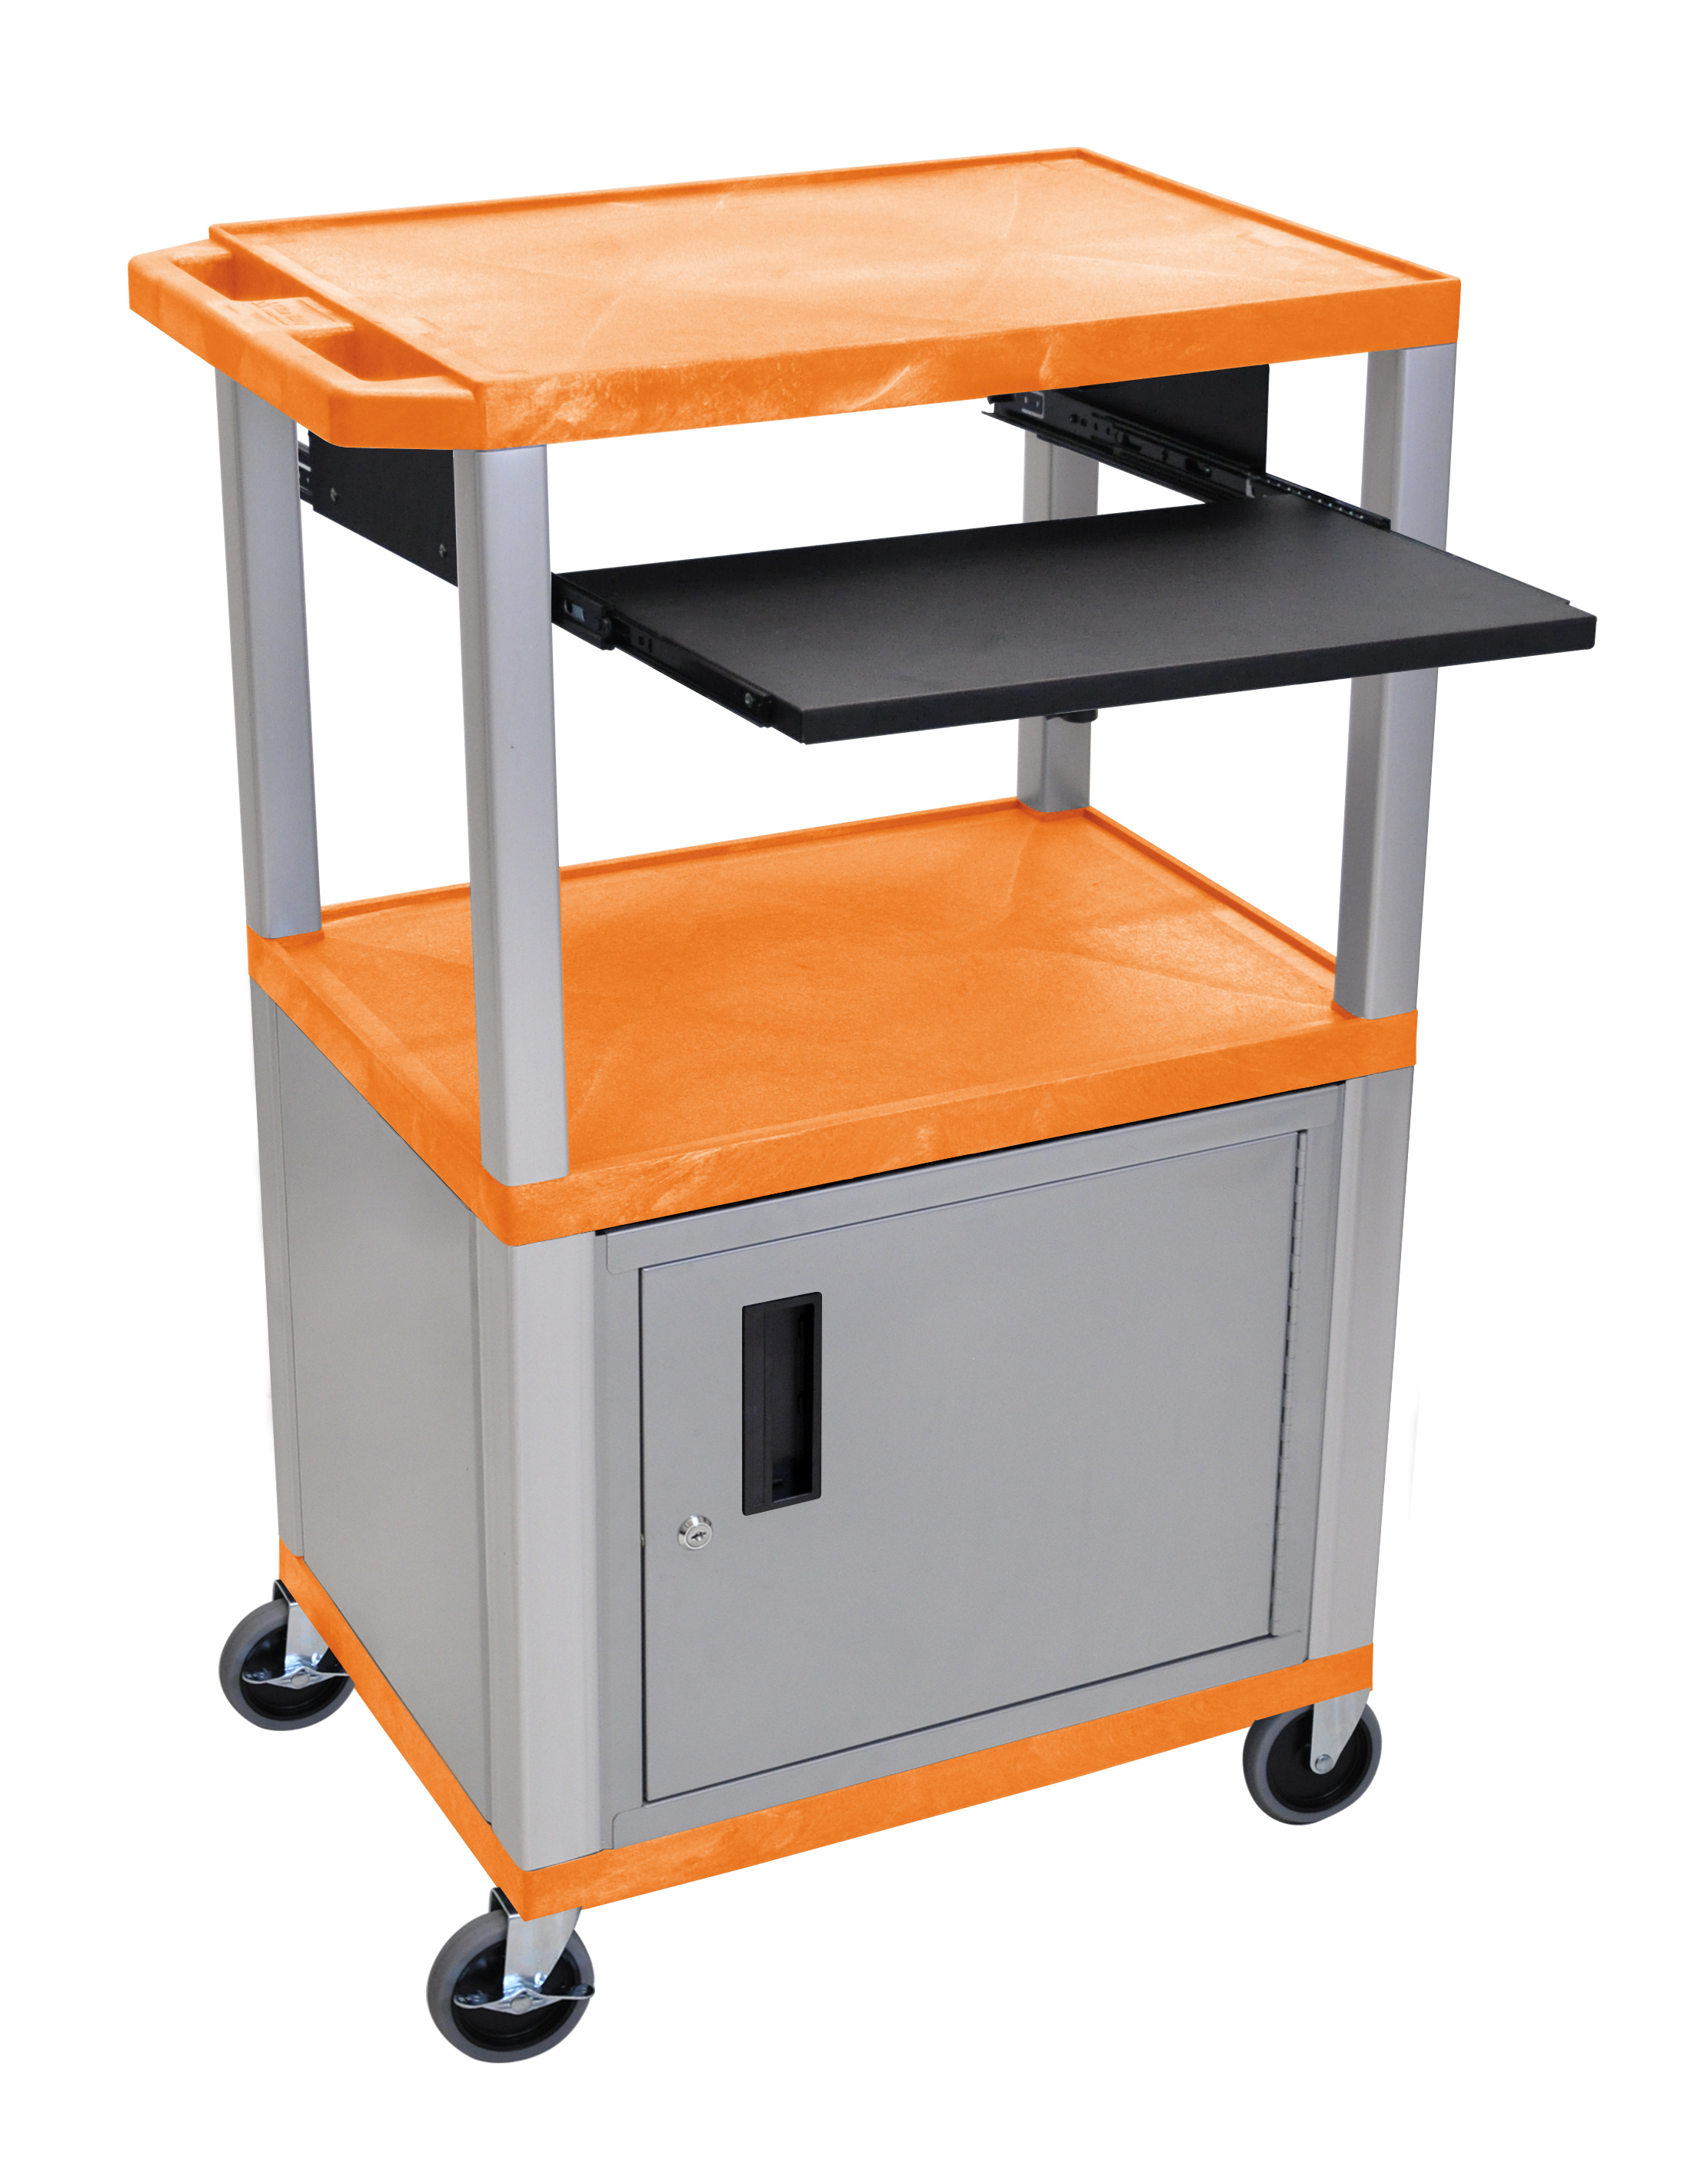 H.Wilson H. Wilson Presentation Cart With Cabinet and Pull Out Tray Orange and Nickel at Sears.com